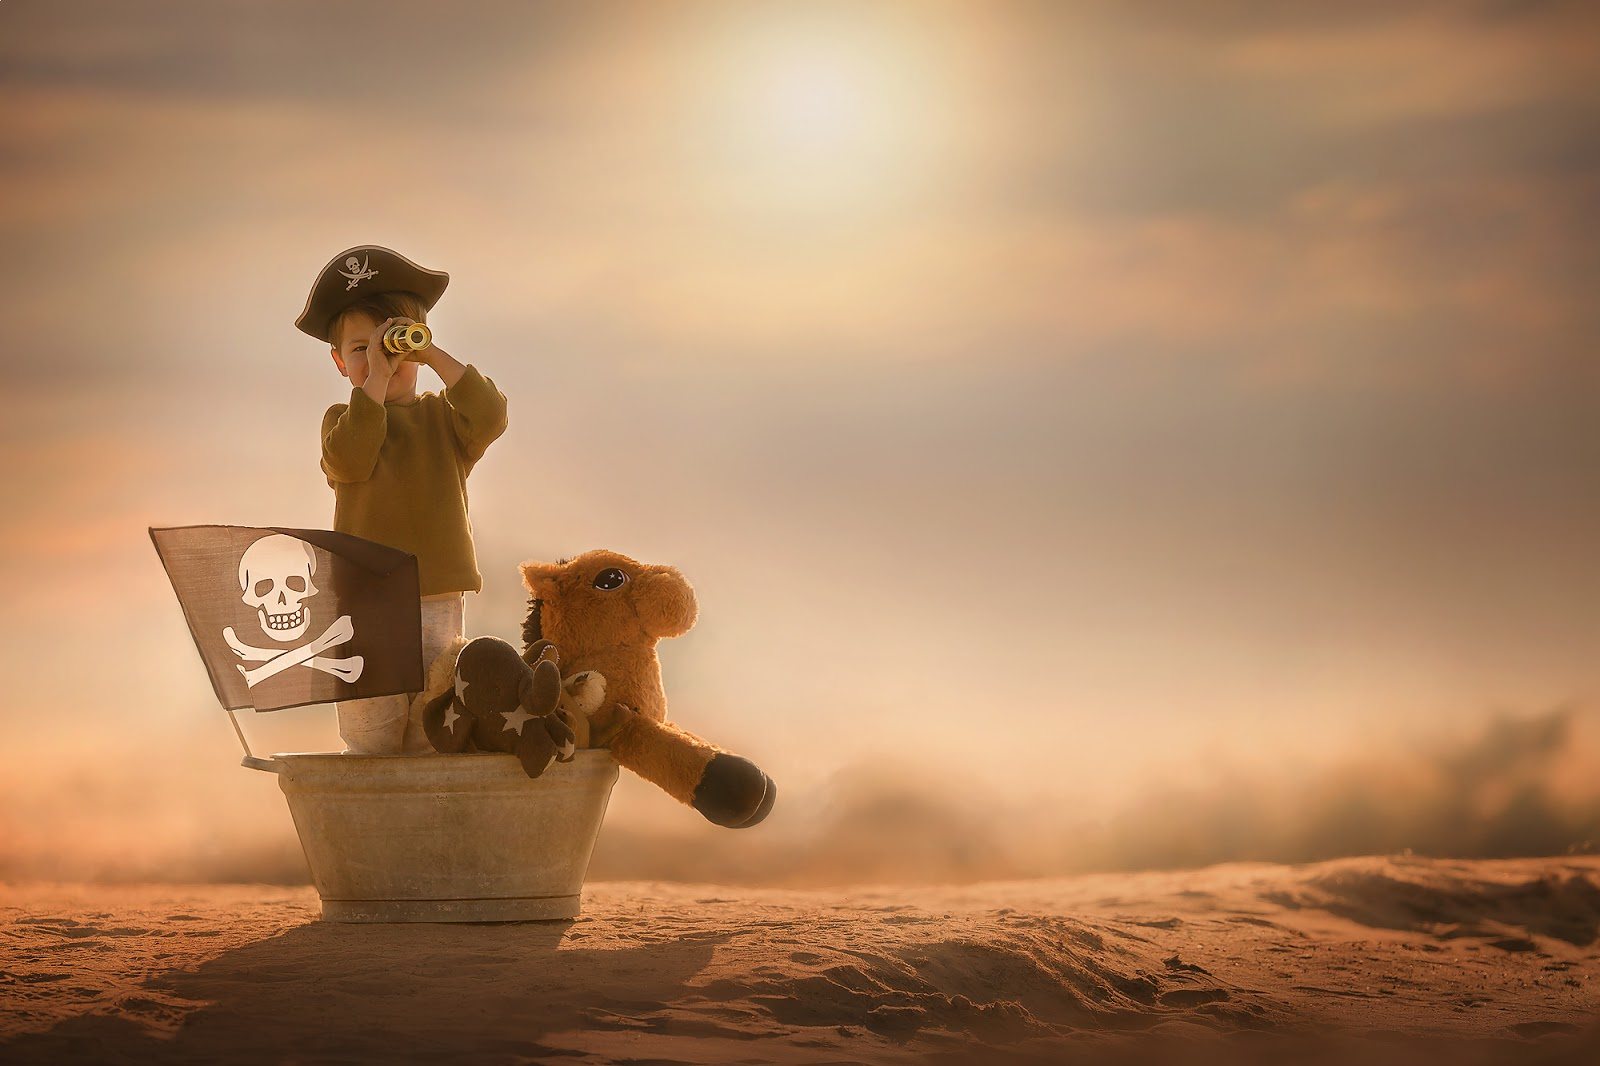 Canon 5D mark III Color image of a little boy pirate standing in a bath tub with toy animals and binoculairs in the desert during sunset by Willie Kers copy